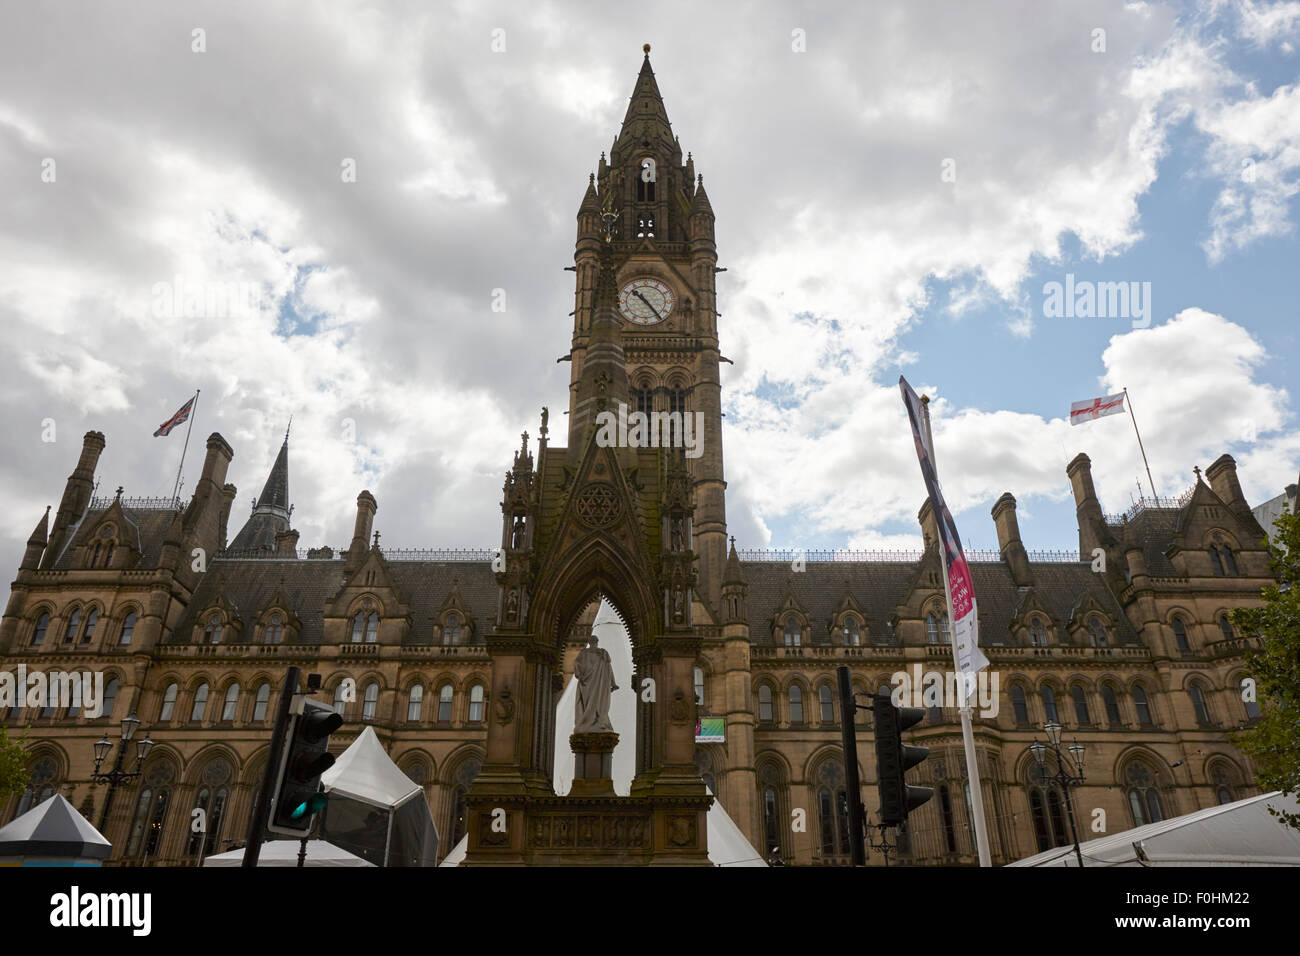 albert square and Manchester town hall England UK - Stock Image